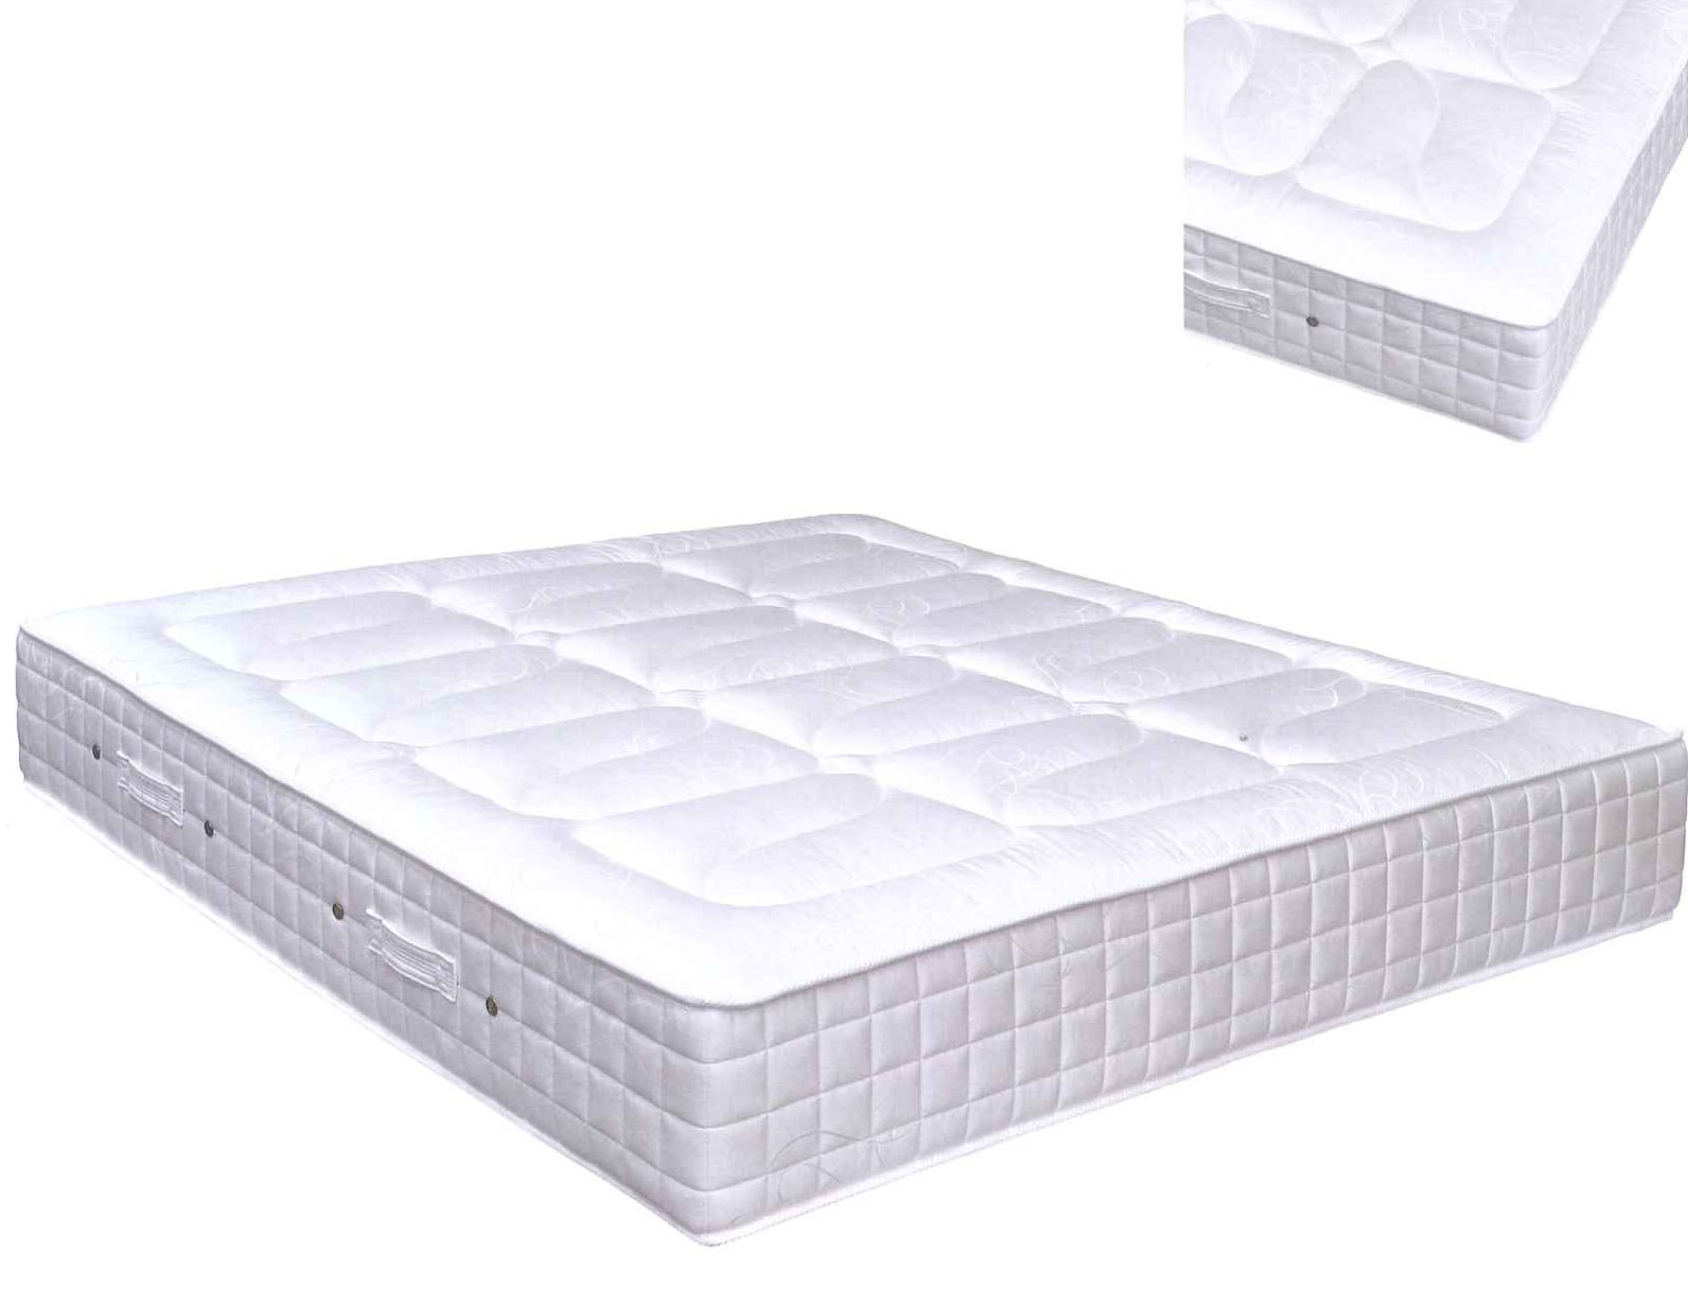 Matelas simple ressorts ensach s latex como - Matelas pirelli bedding ...